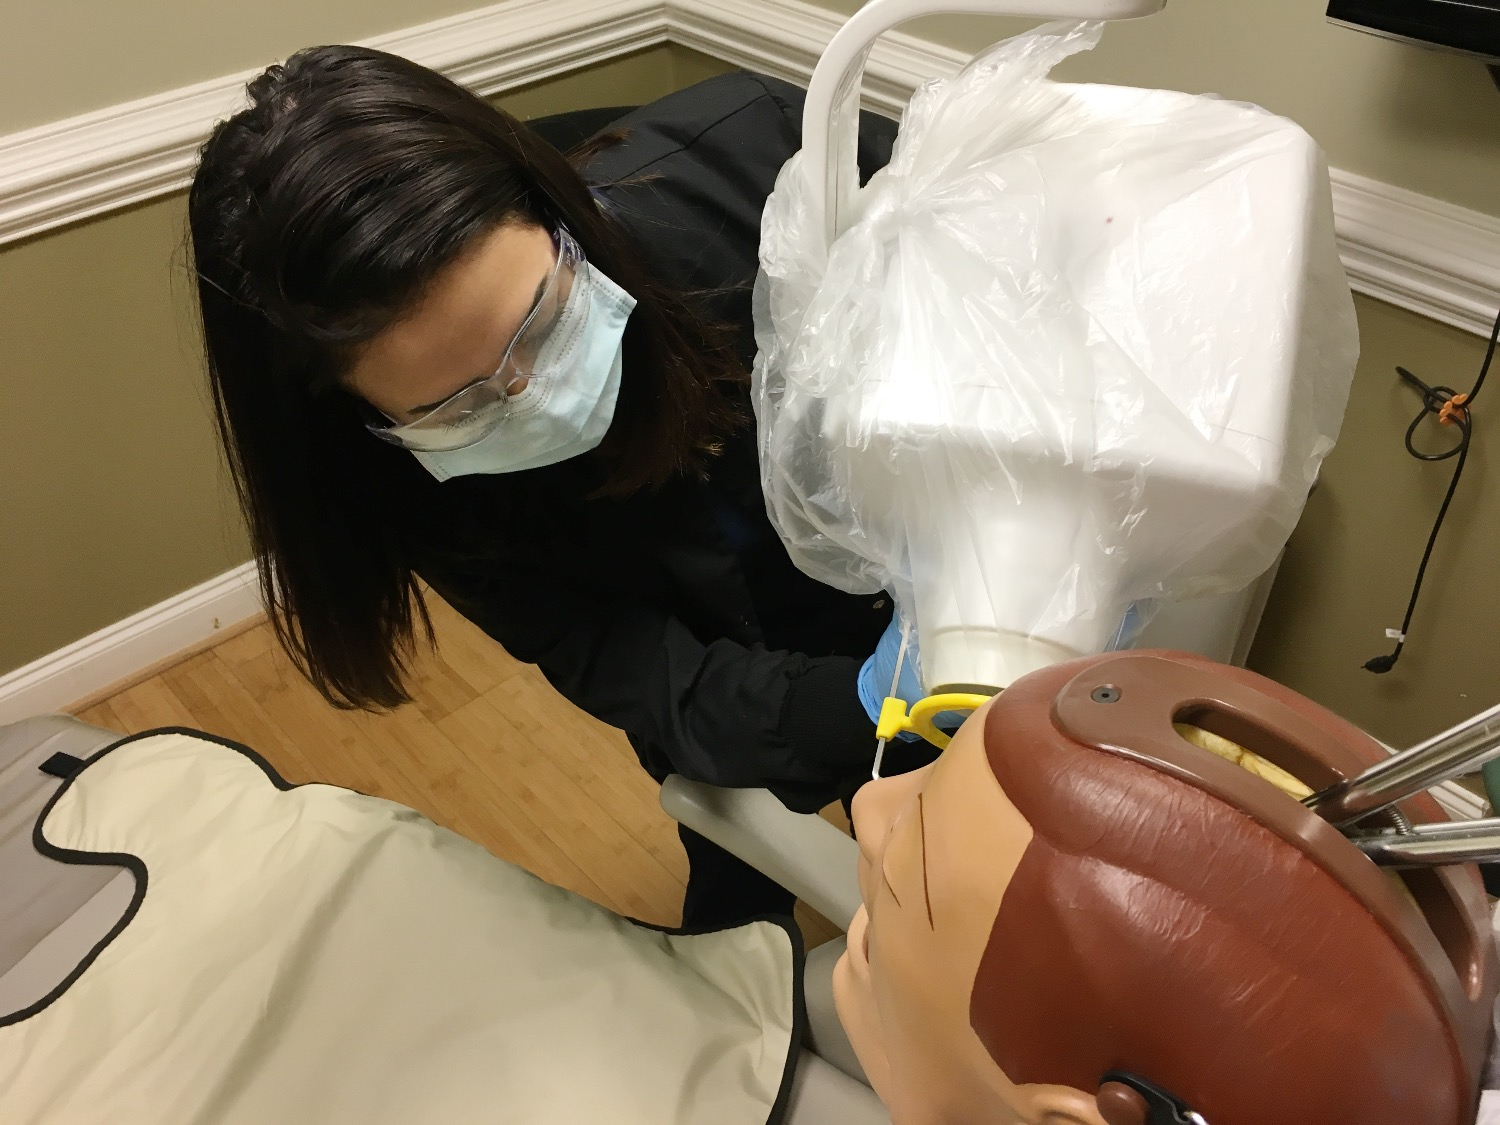 Dental Assistant Placing X-ray